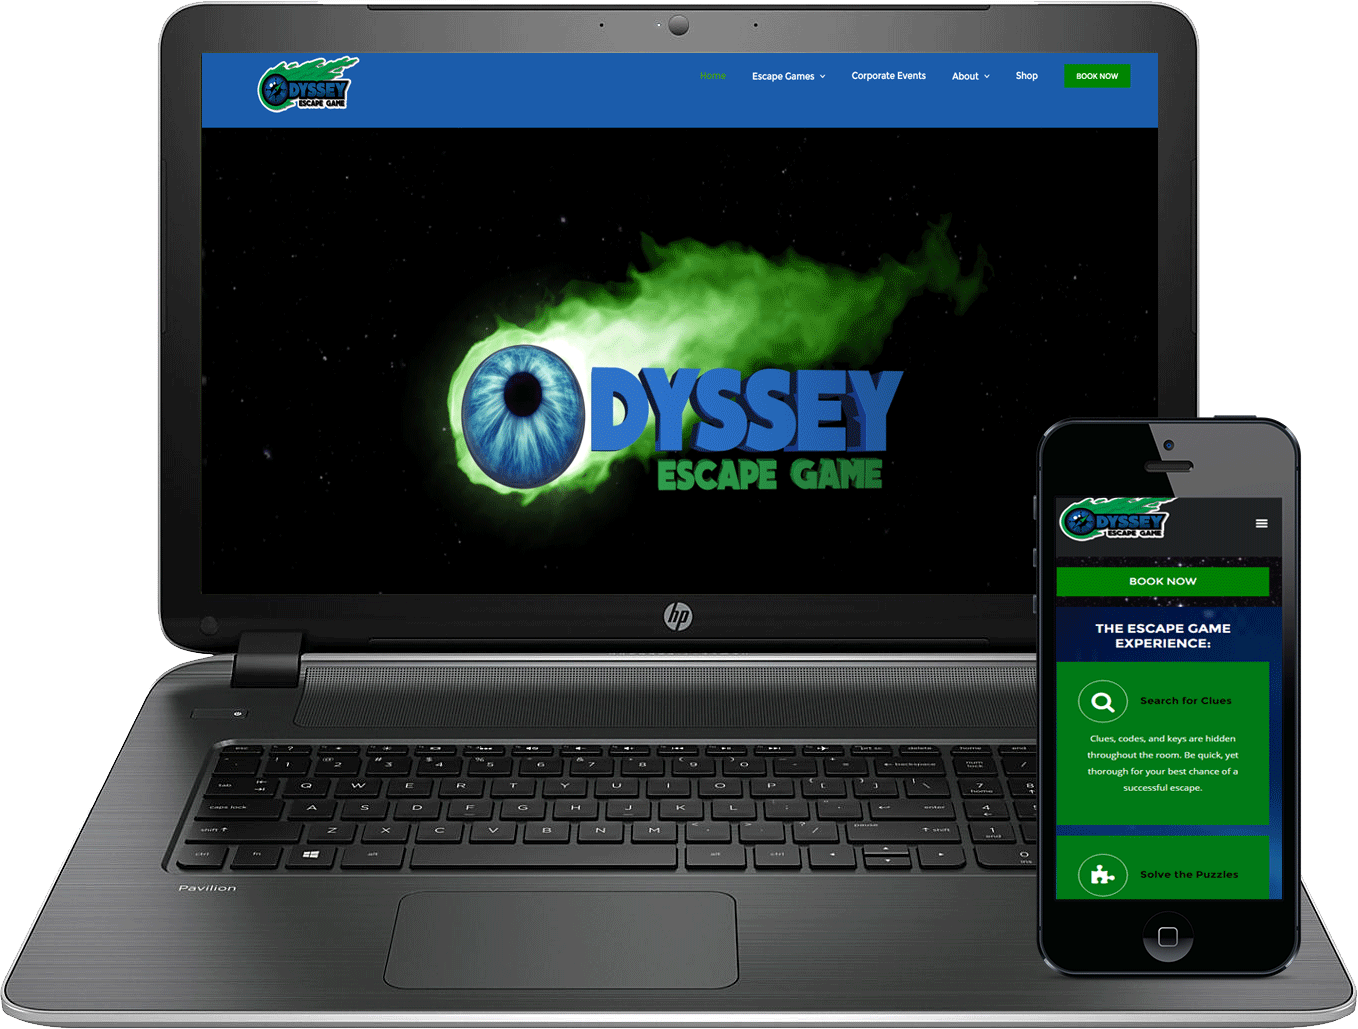 Odyssey Escape Game Design by Atticus Marketing